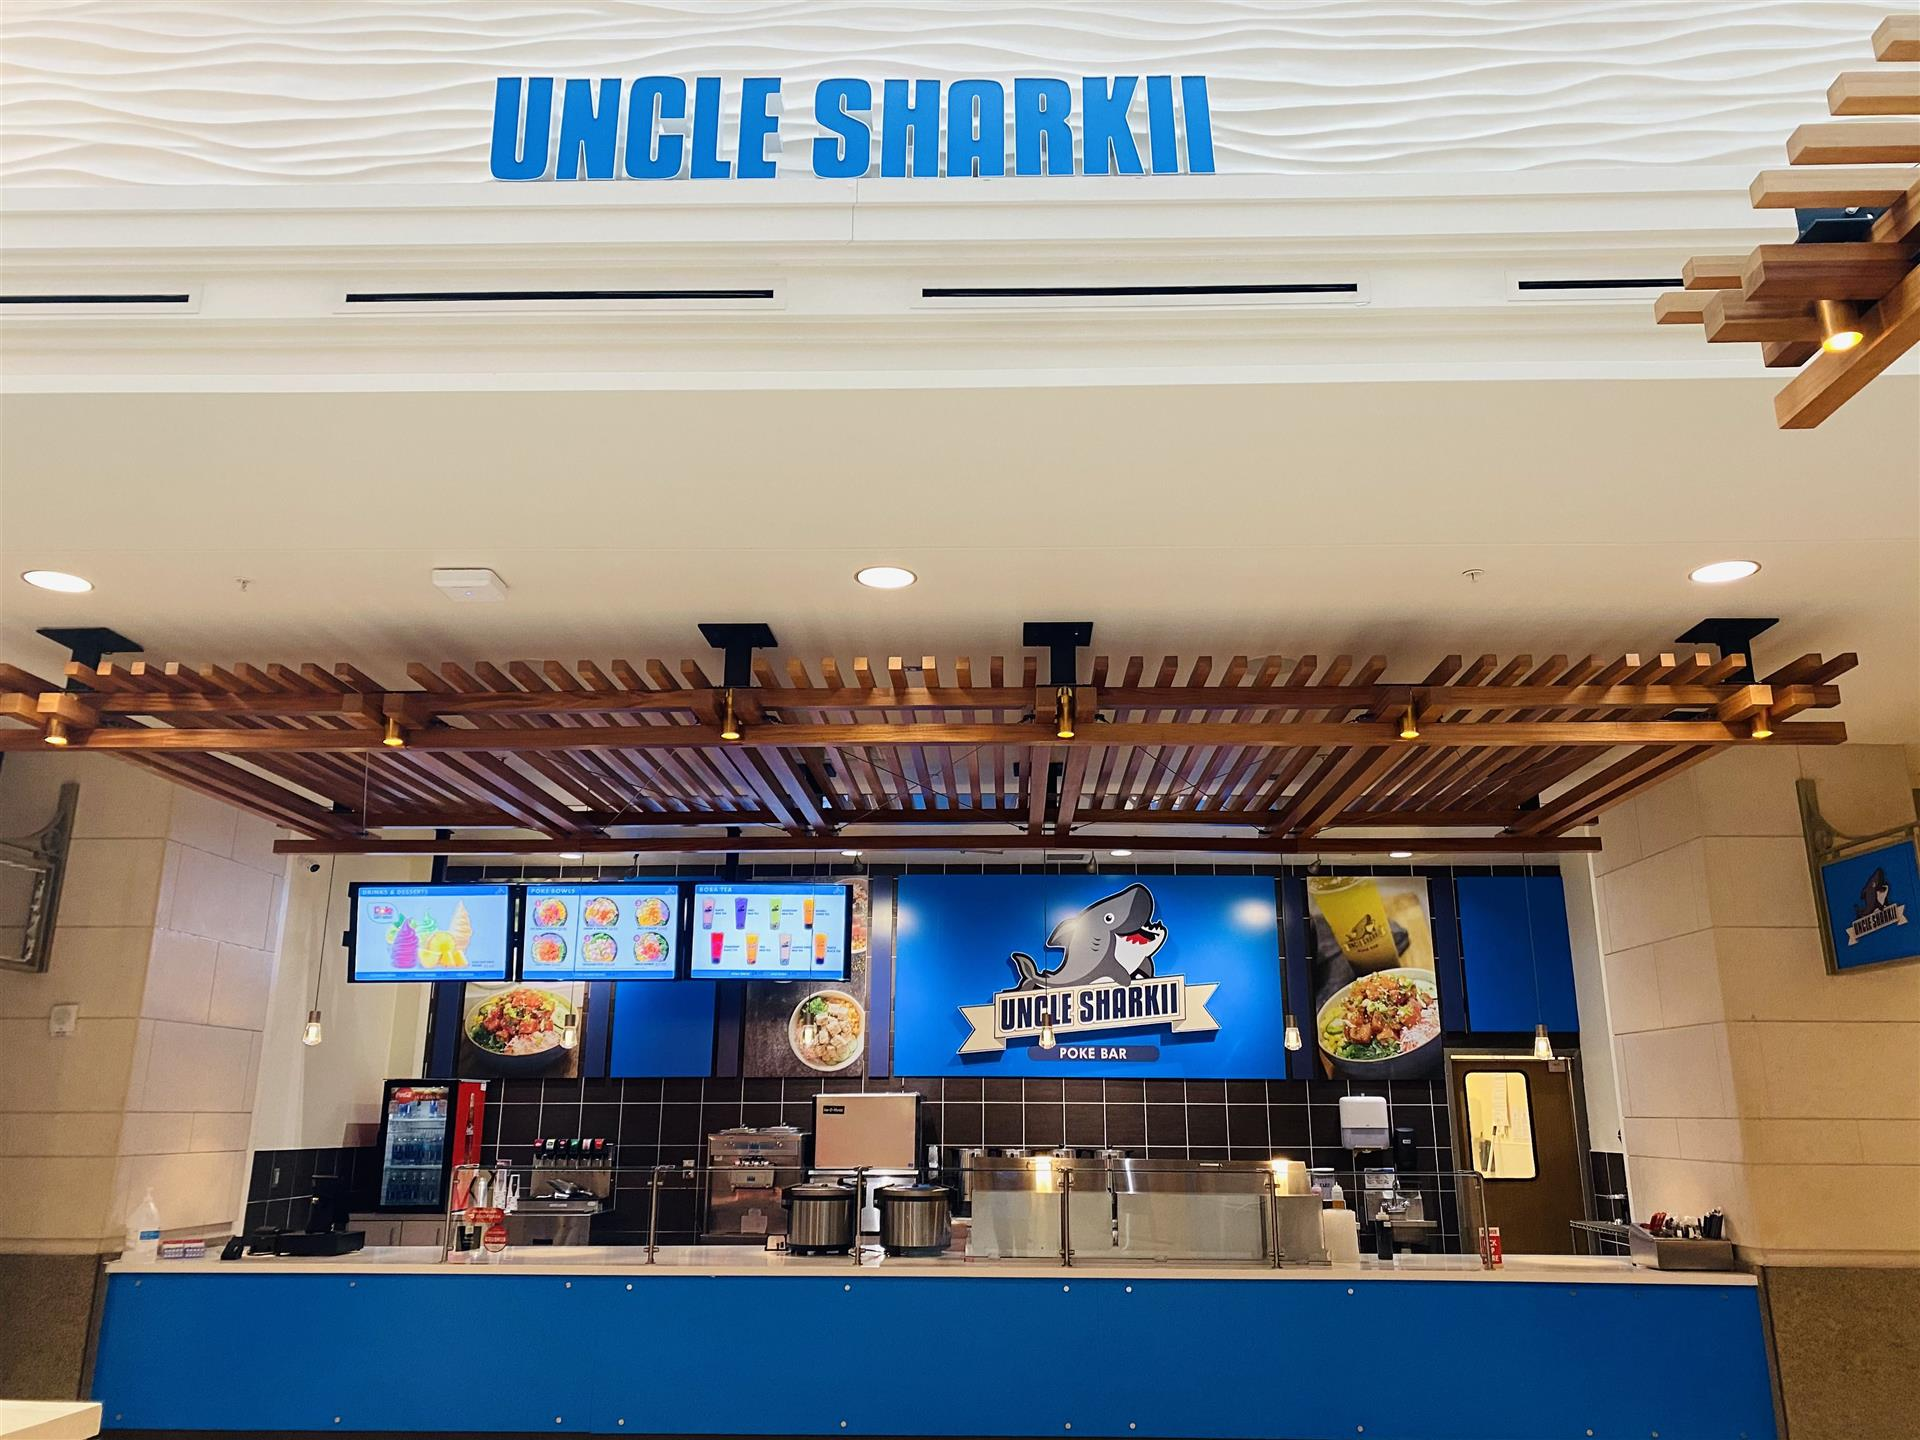 Uncle Sharkii counter in Salt Lake city